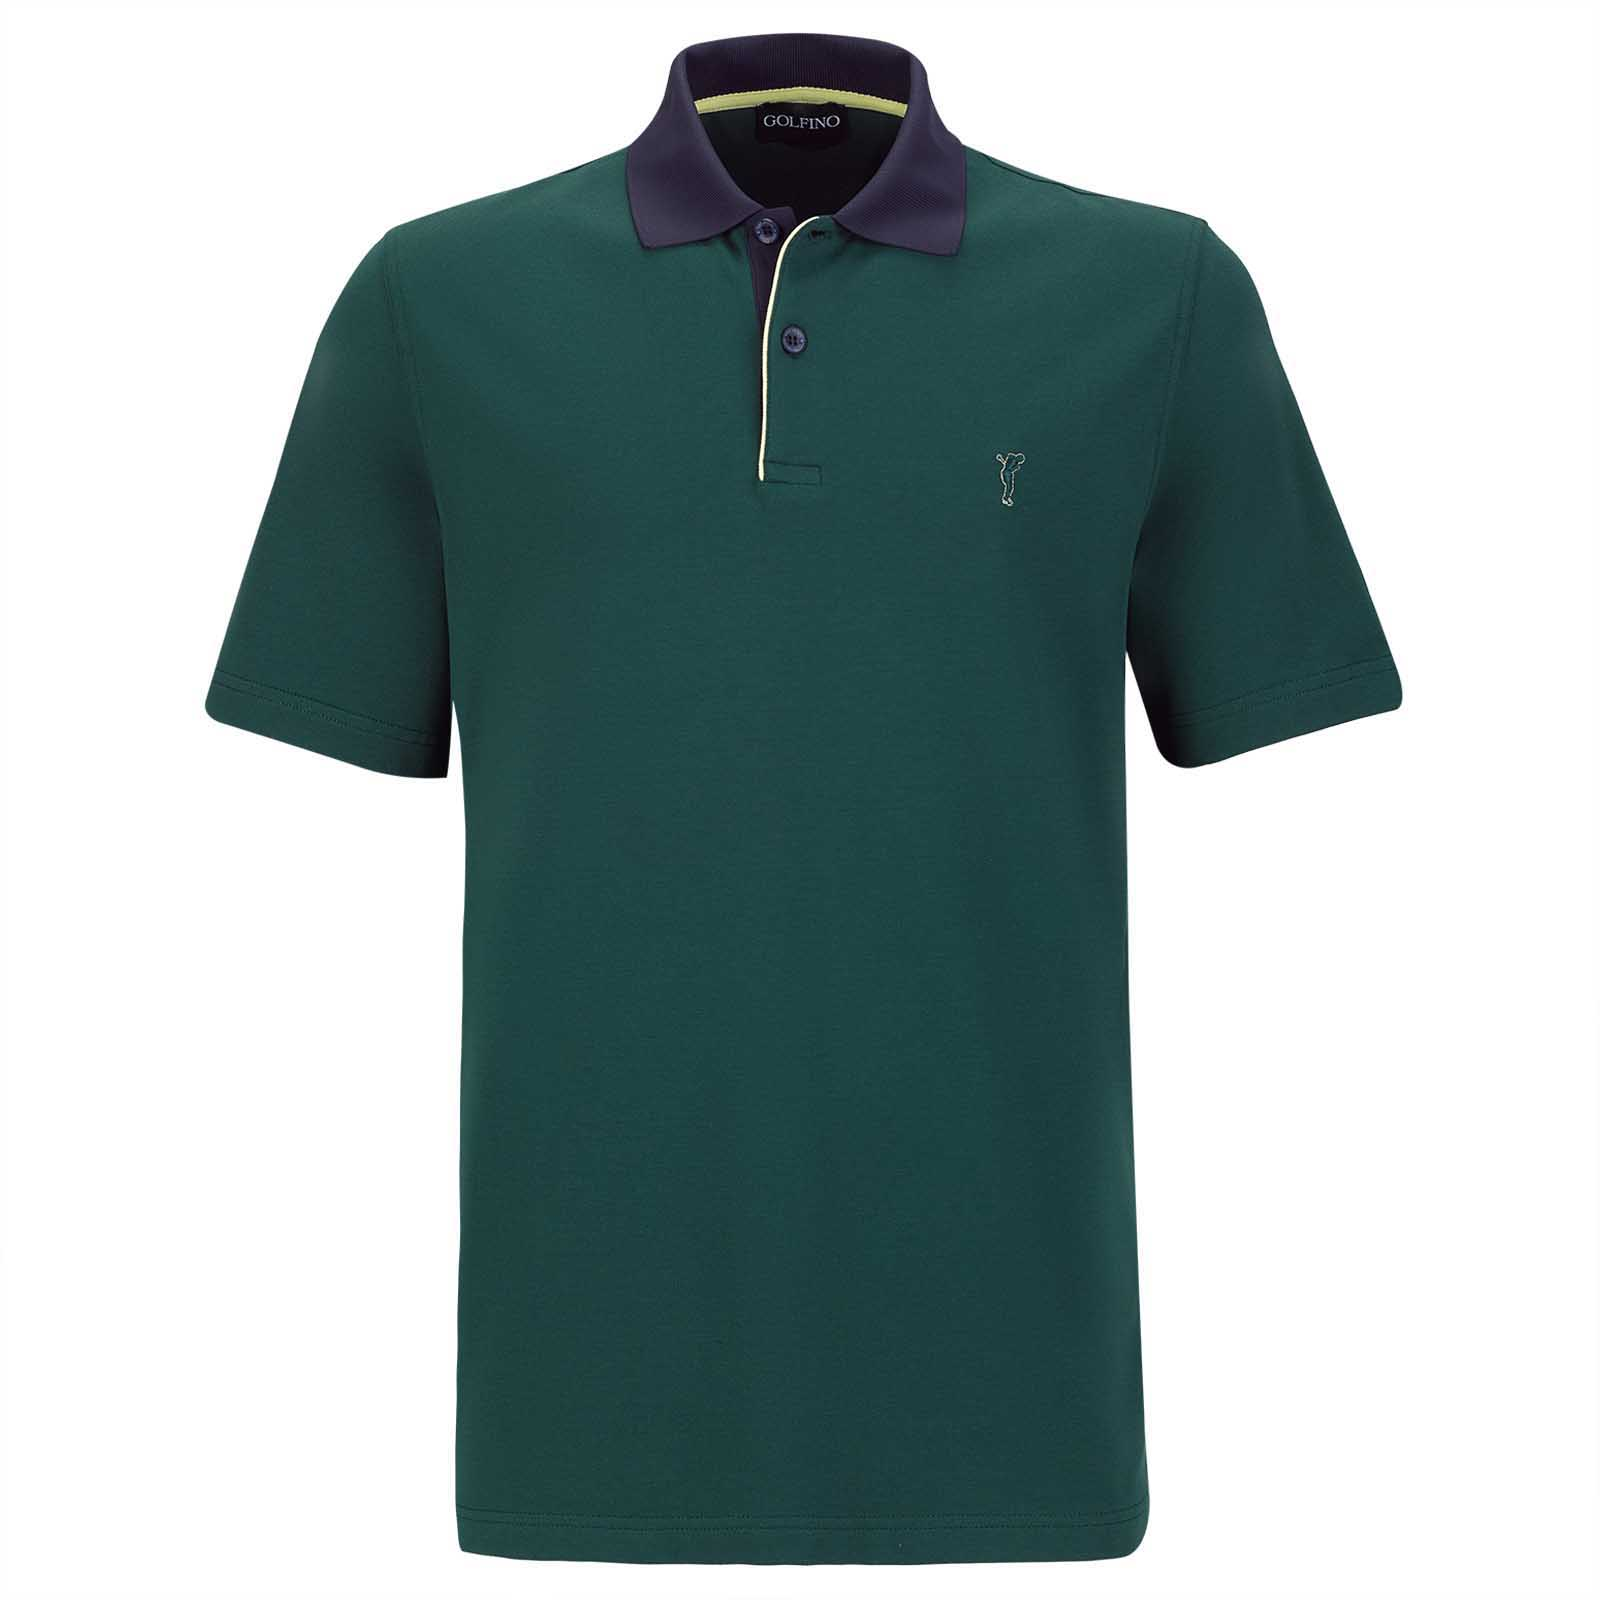 Men's cotton blend short-sleeve golf polo shirt with UV protection